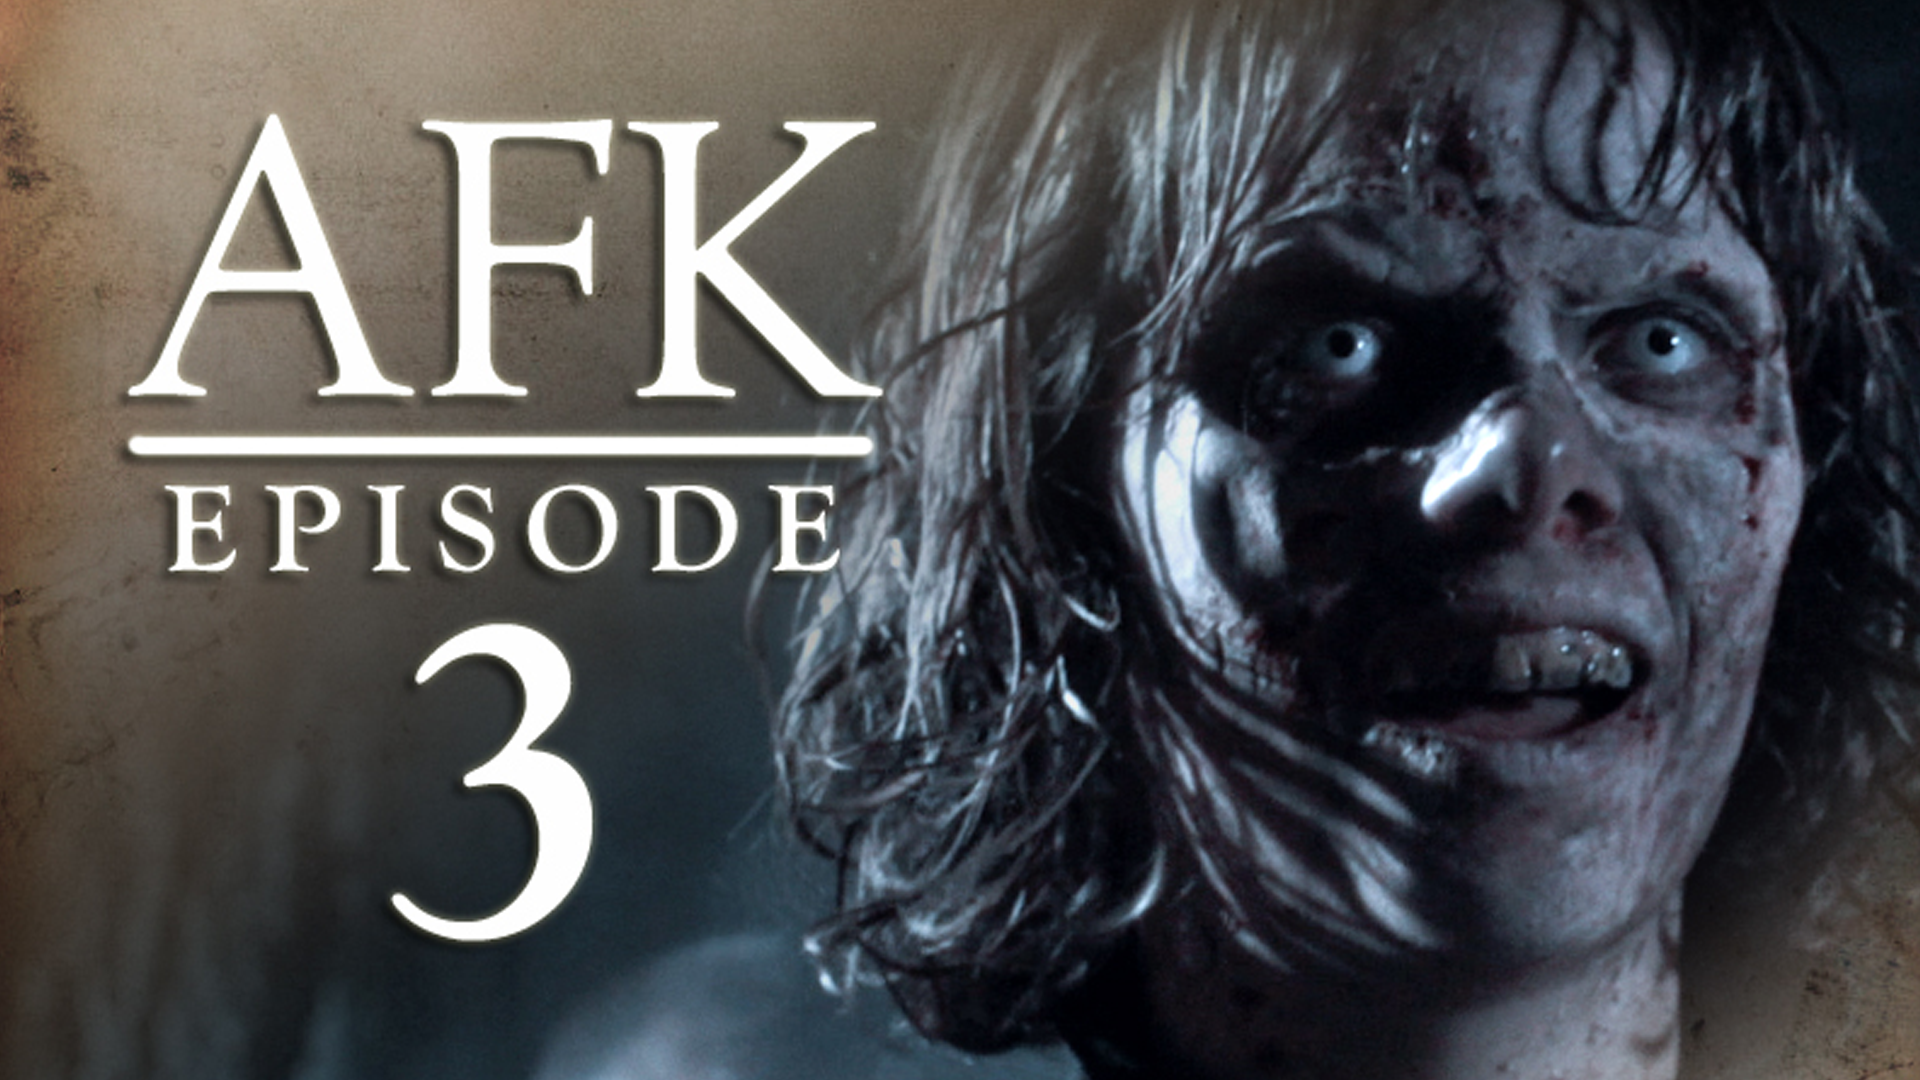 AFK Season 1 Episode 3 Newbs